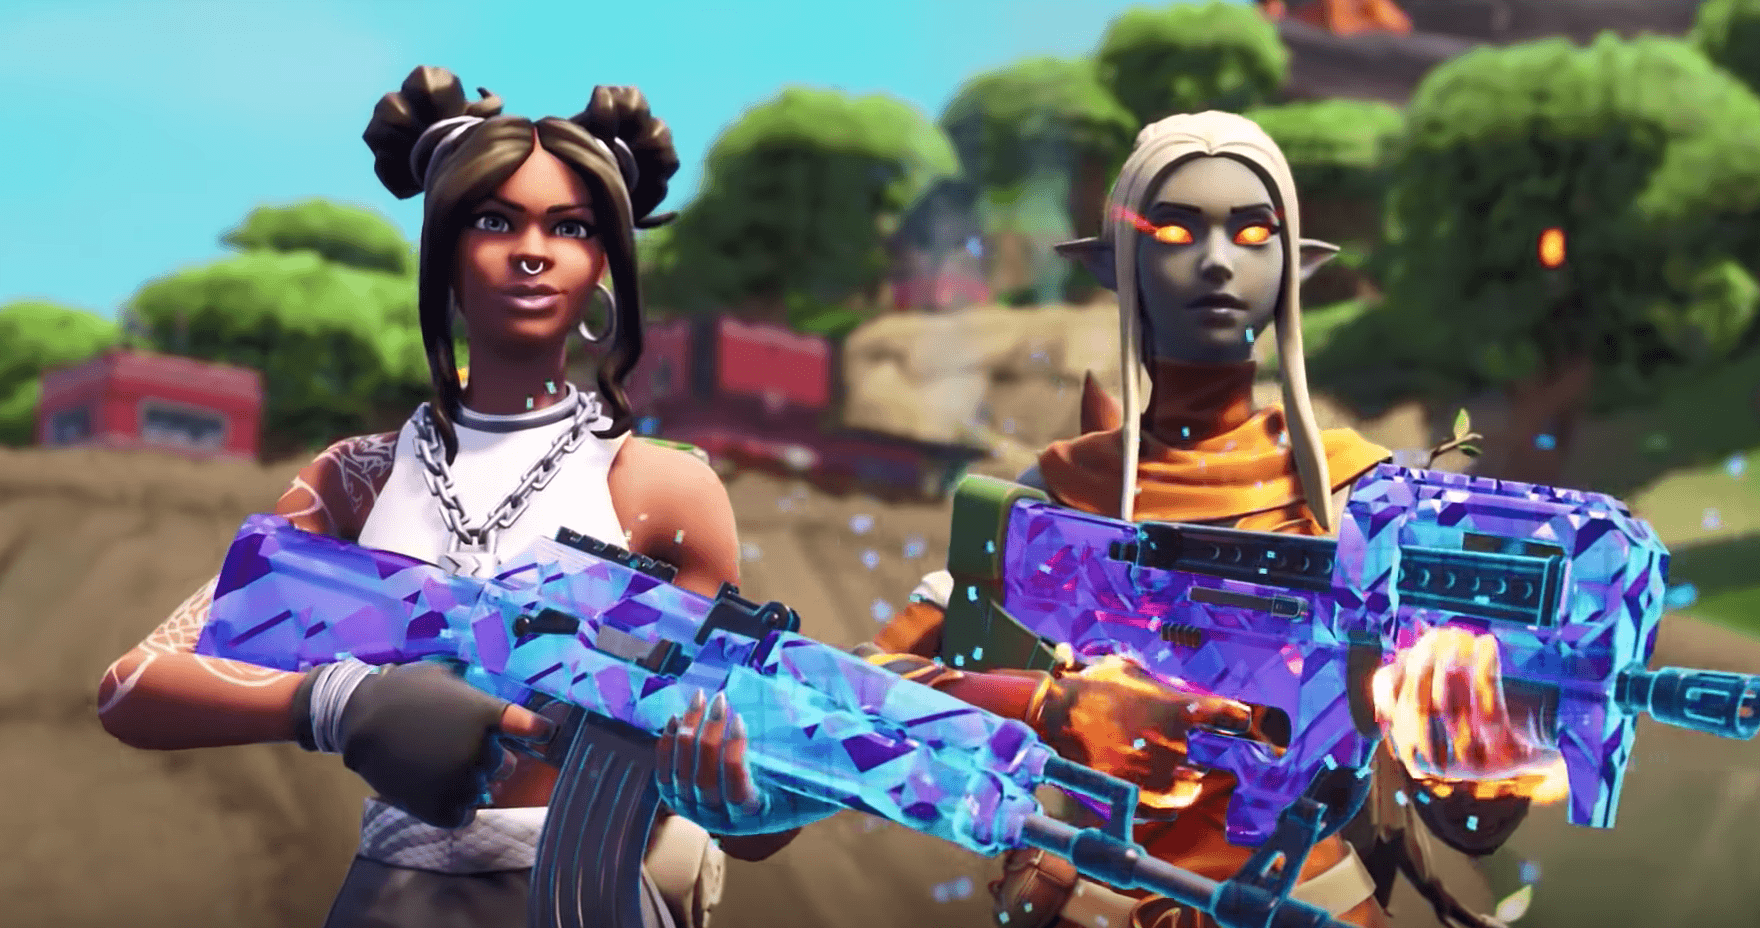 Anime 2014 Wallpaper Luxe Fortnite Wallpapers Wallpaper Cave